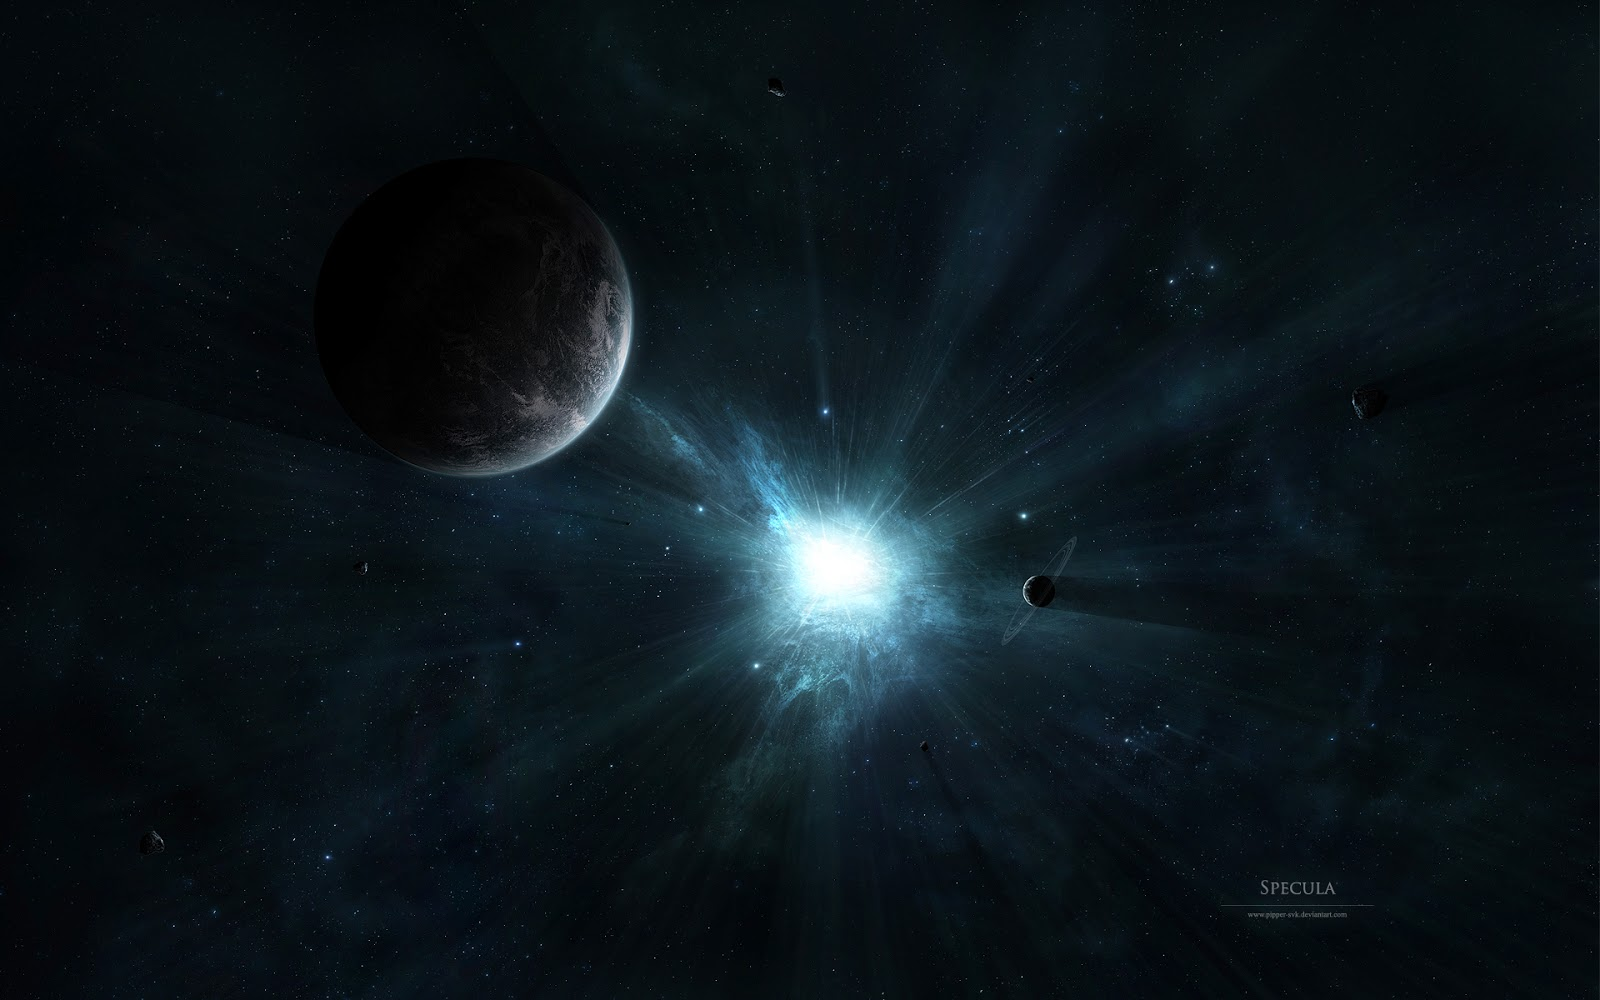 Gup Shup 28 Amazing Space Wallpapers in HD 1600x1000